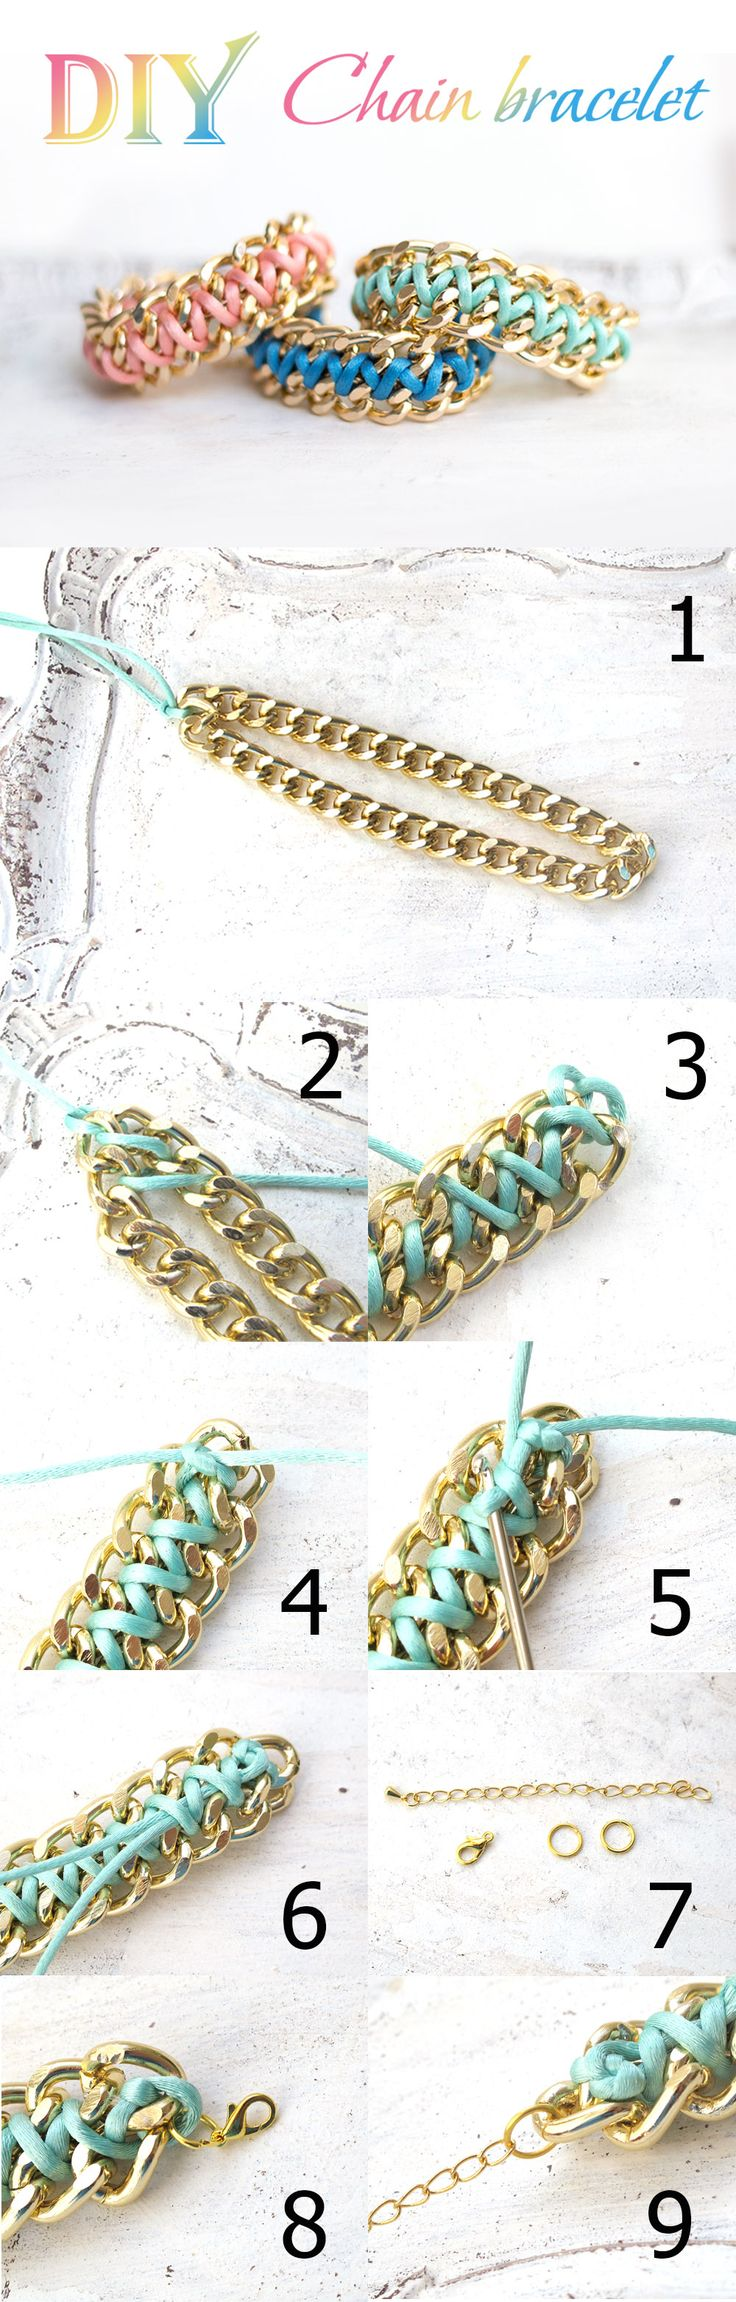 Double Chain bracelet DIY to brighten your wardrobe #jewelryinspiration #cousincorp                                                                                                                                                                                 More